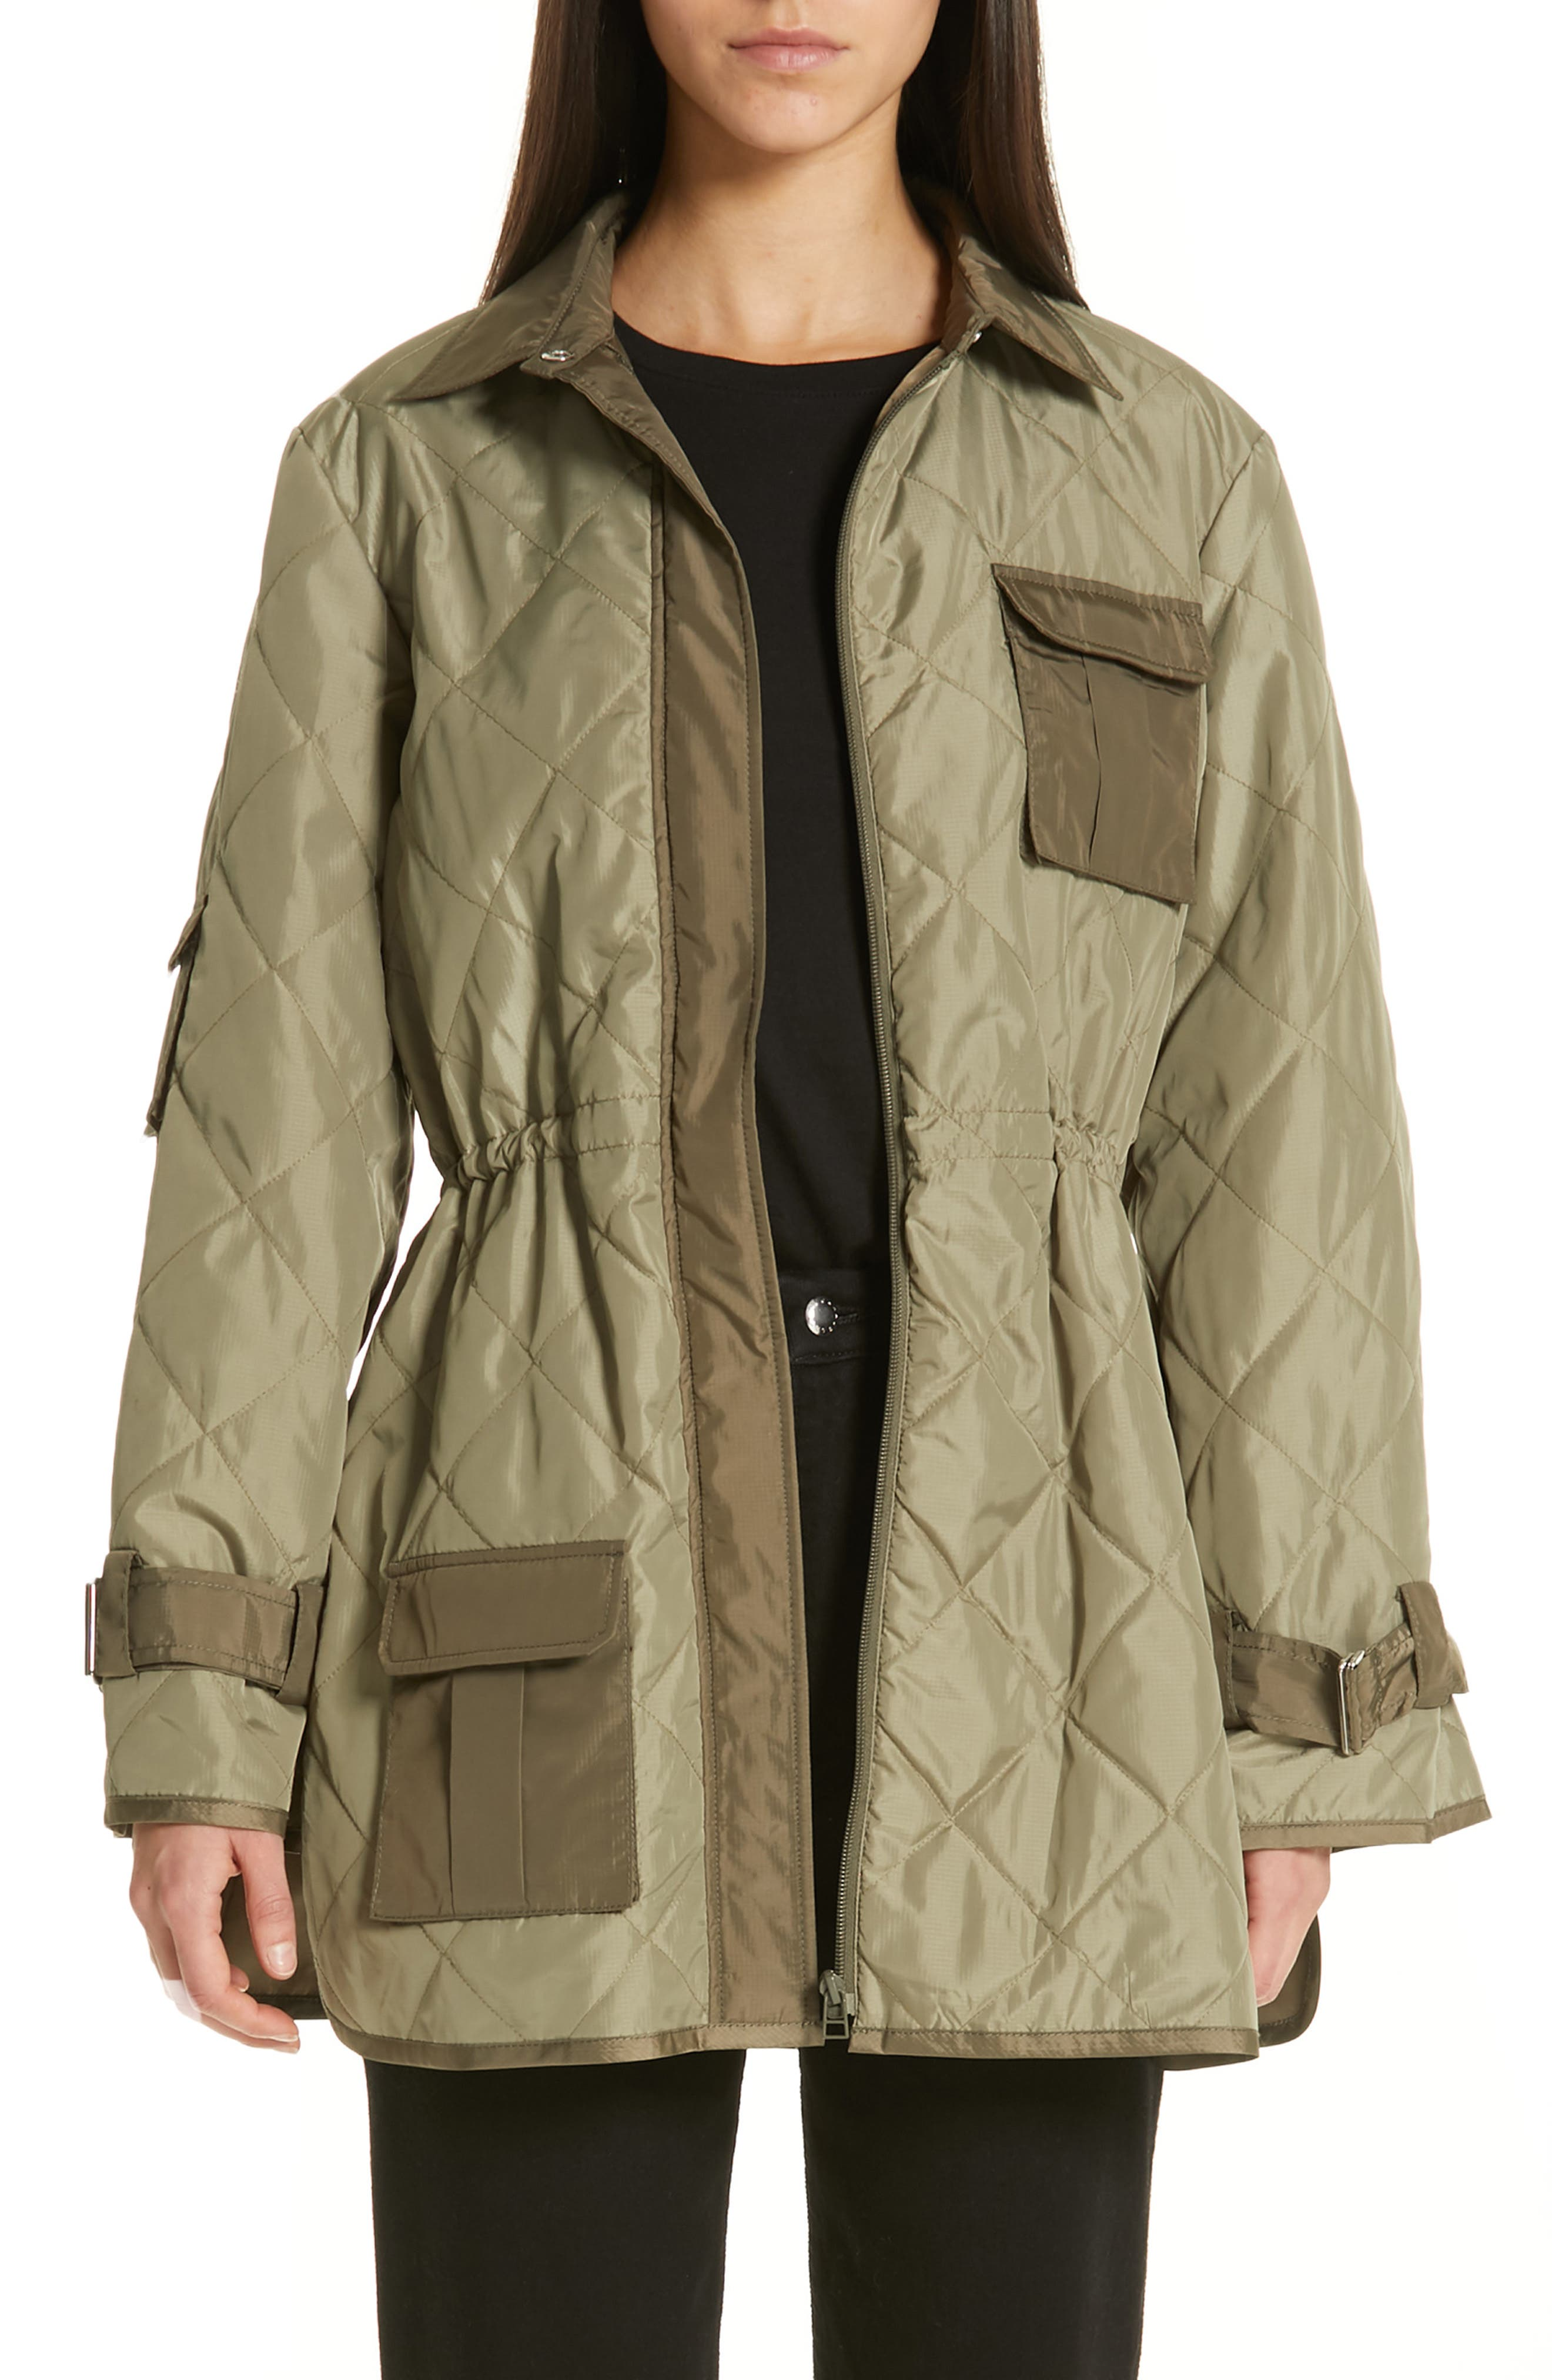 GANNI, Quilted Ripstop Jacket, Main thumbnail 1, color, ALOE